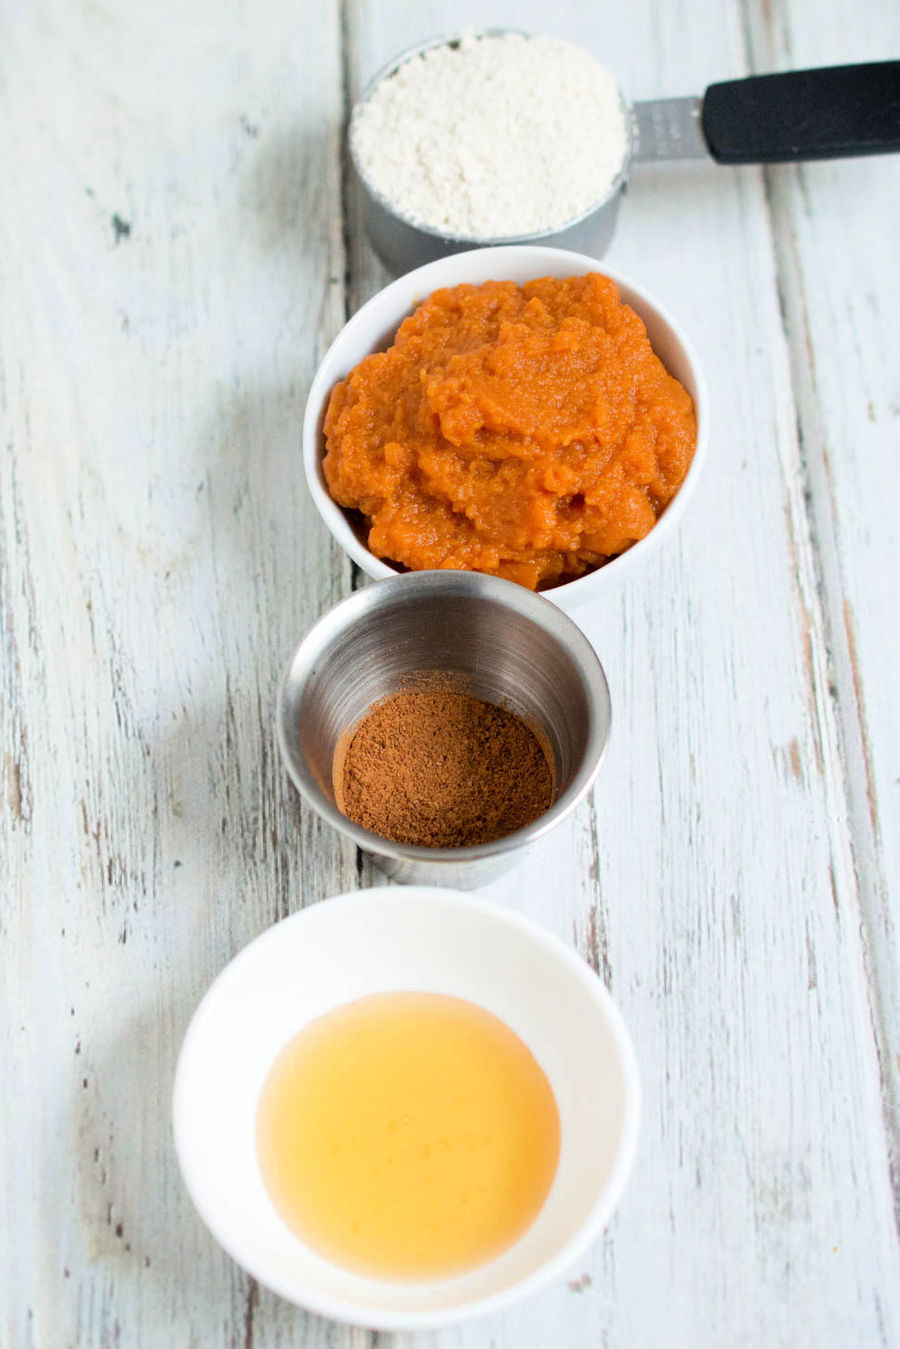 Are you looking for a face mask recipe for brighter, tighter skin? This DIY Pumpkin Face Mask has ingredients that improve the overall appearance of skin.